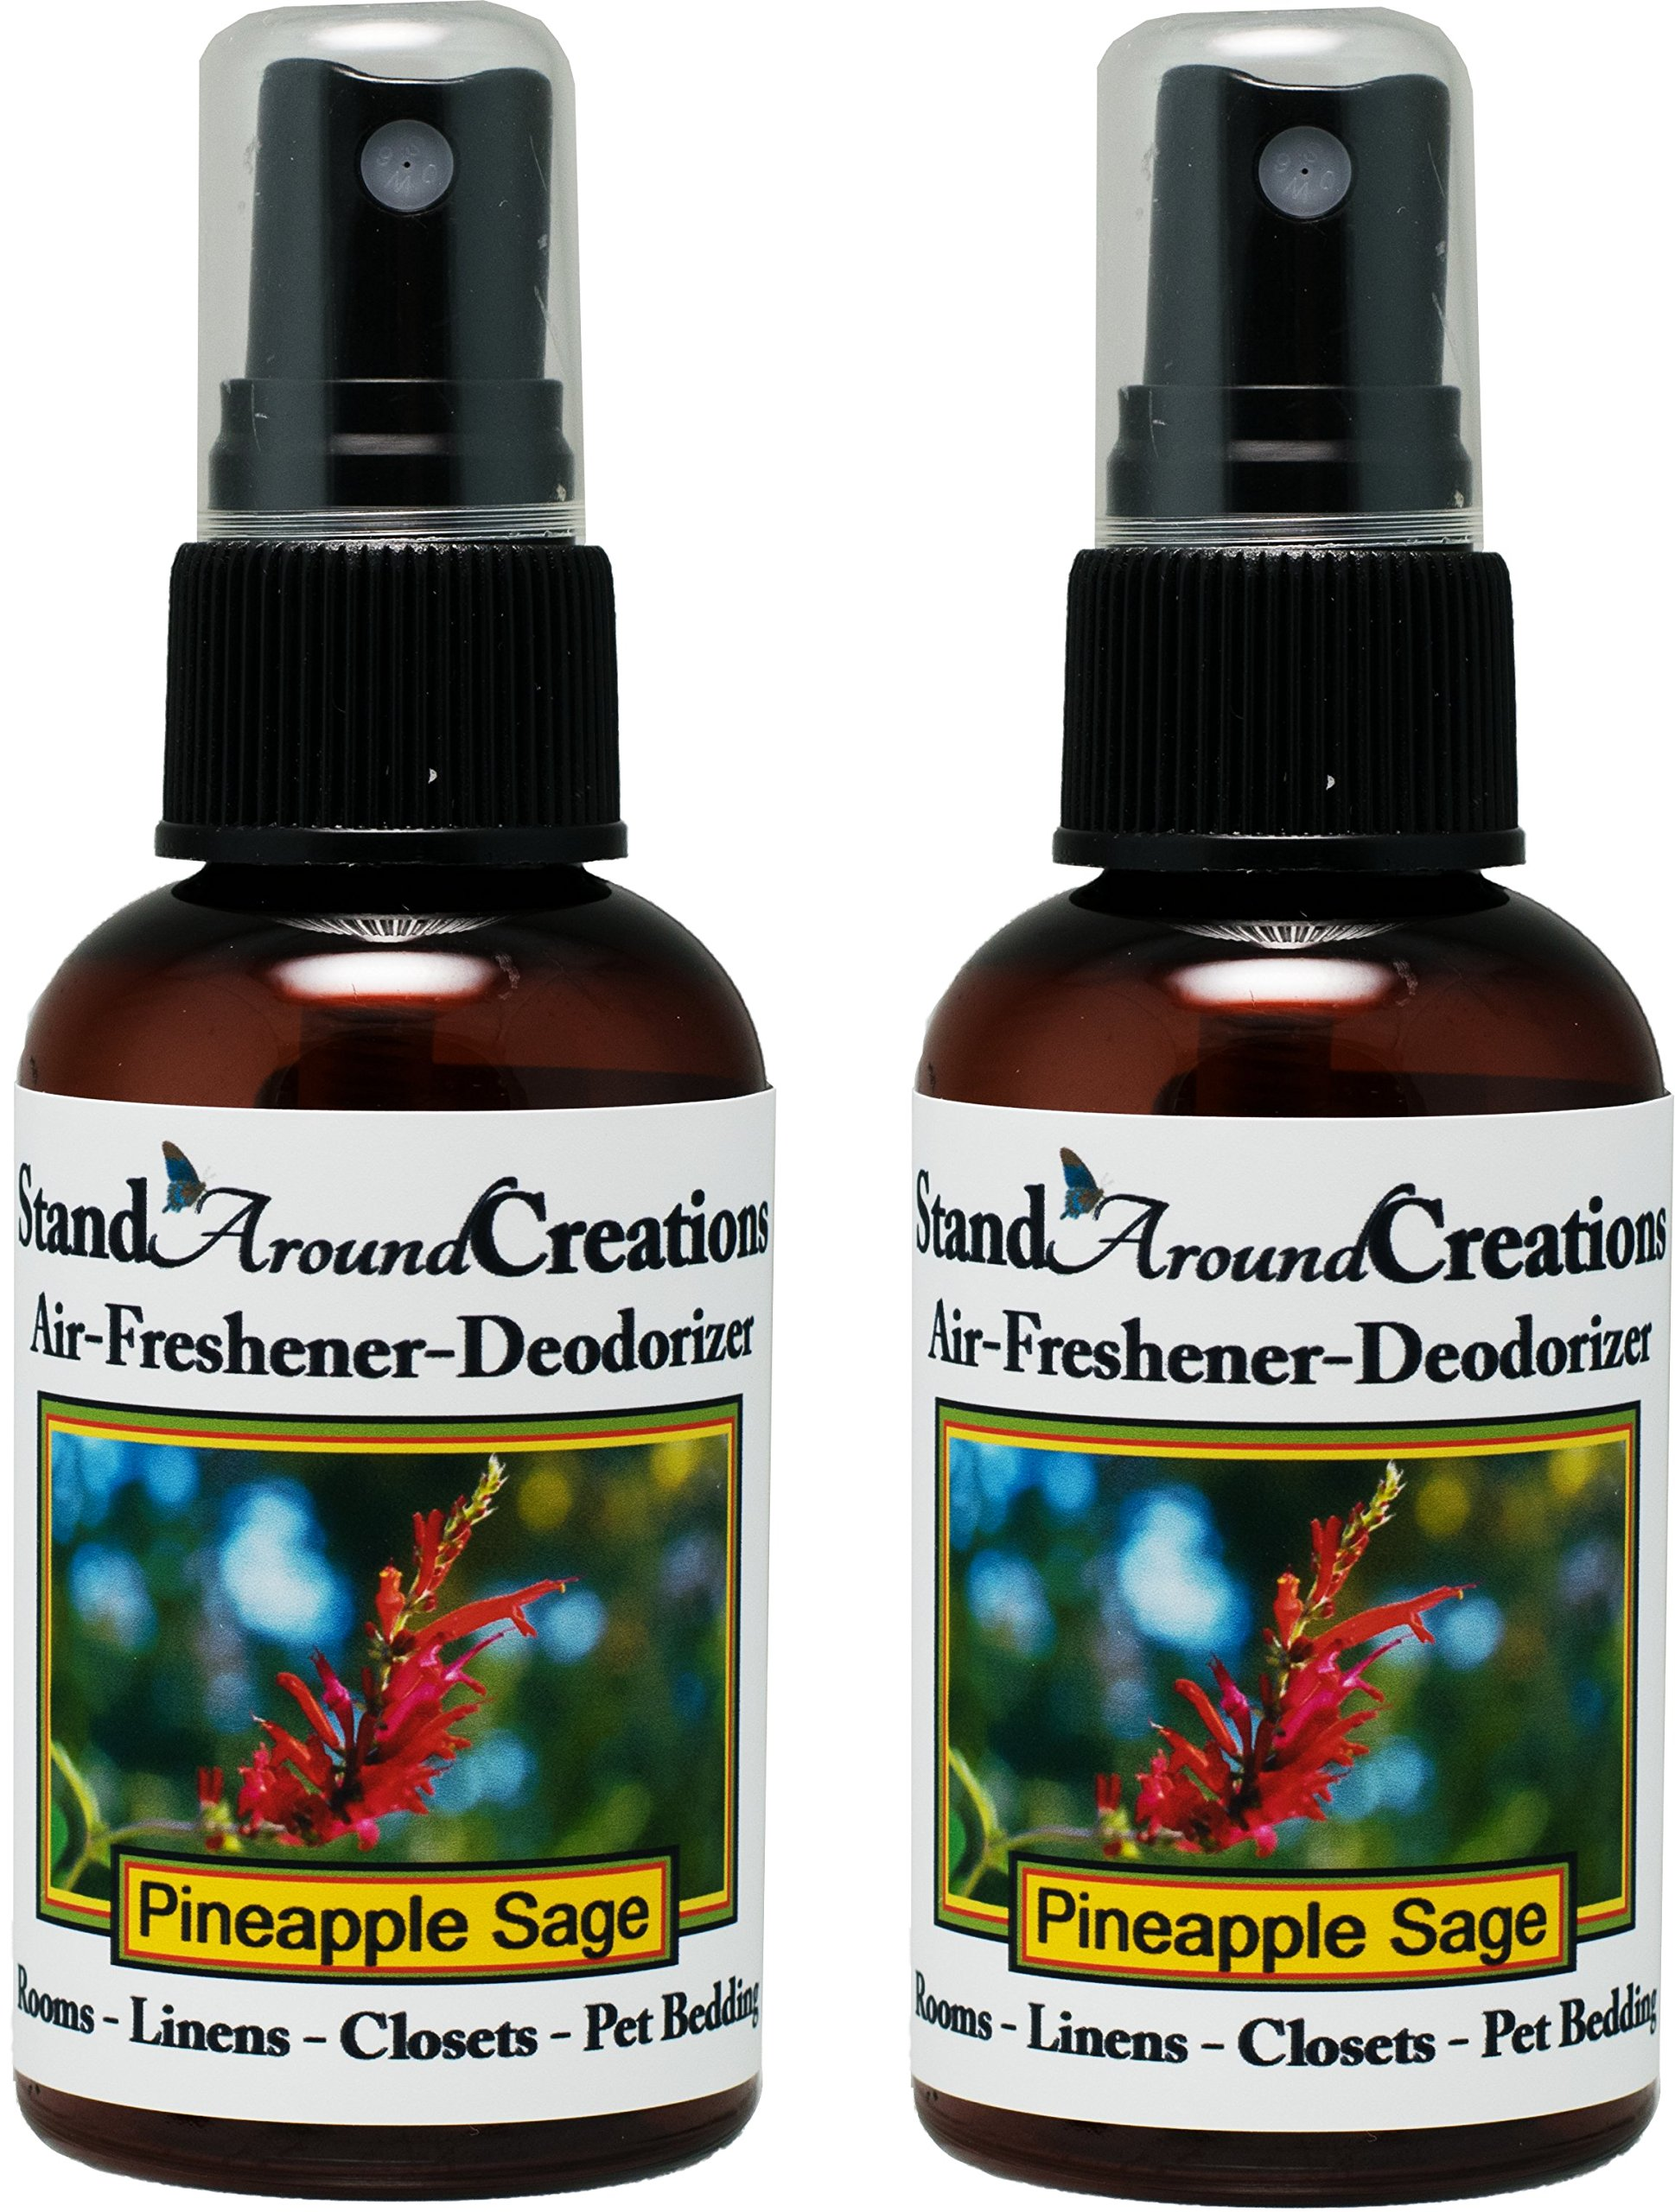 Set of 2 - Concentrated Spray For Room / Linen / Room Deodorizer / Air Freshener - 2 fl oz - Scent - Pineapple/Sage